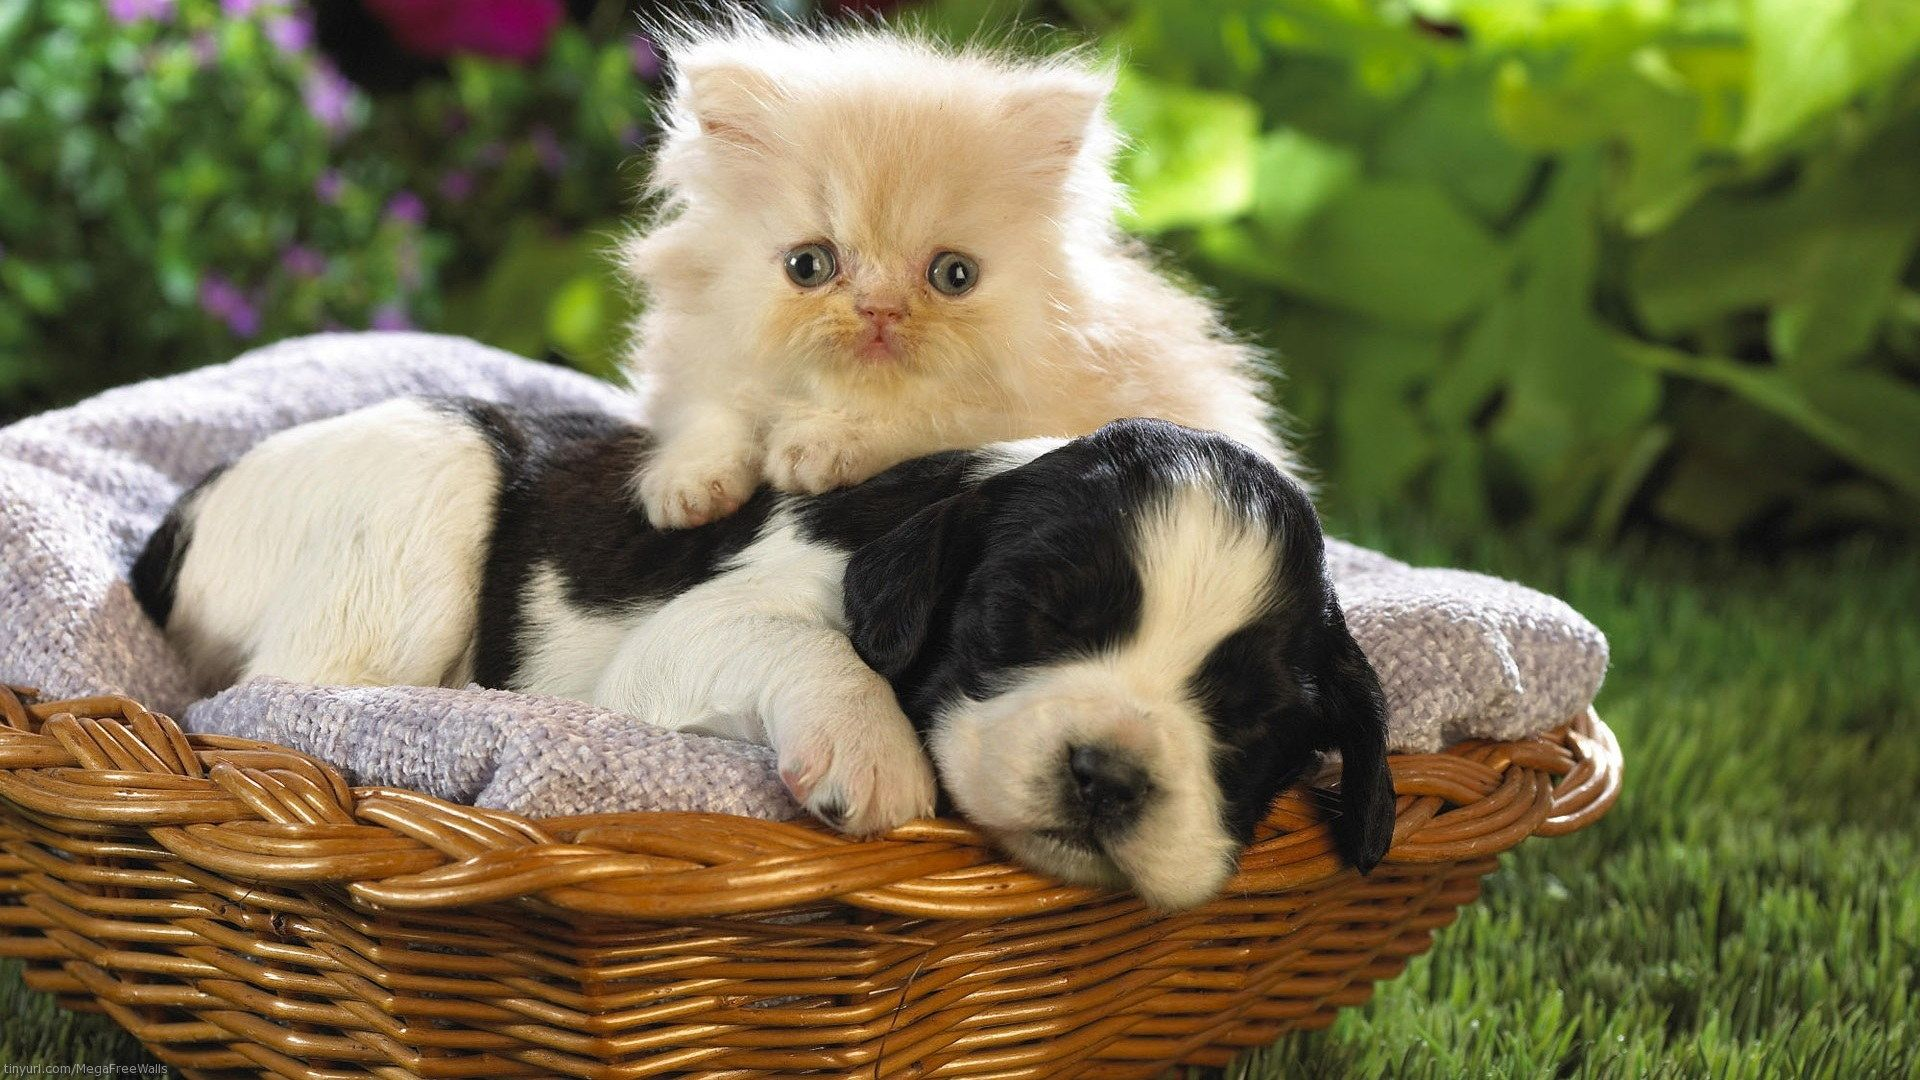 Puppy And Kitten wallpaper download